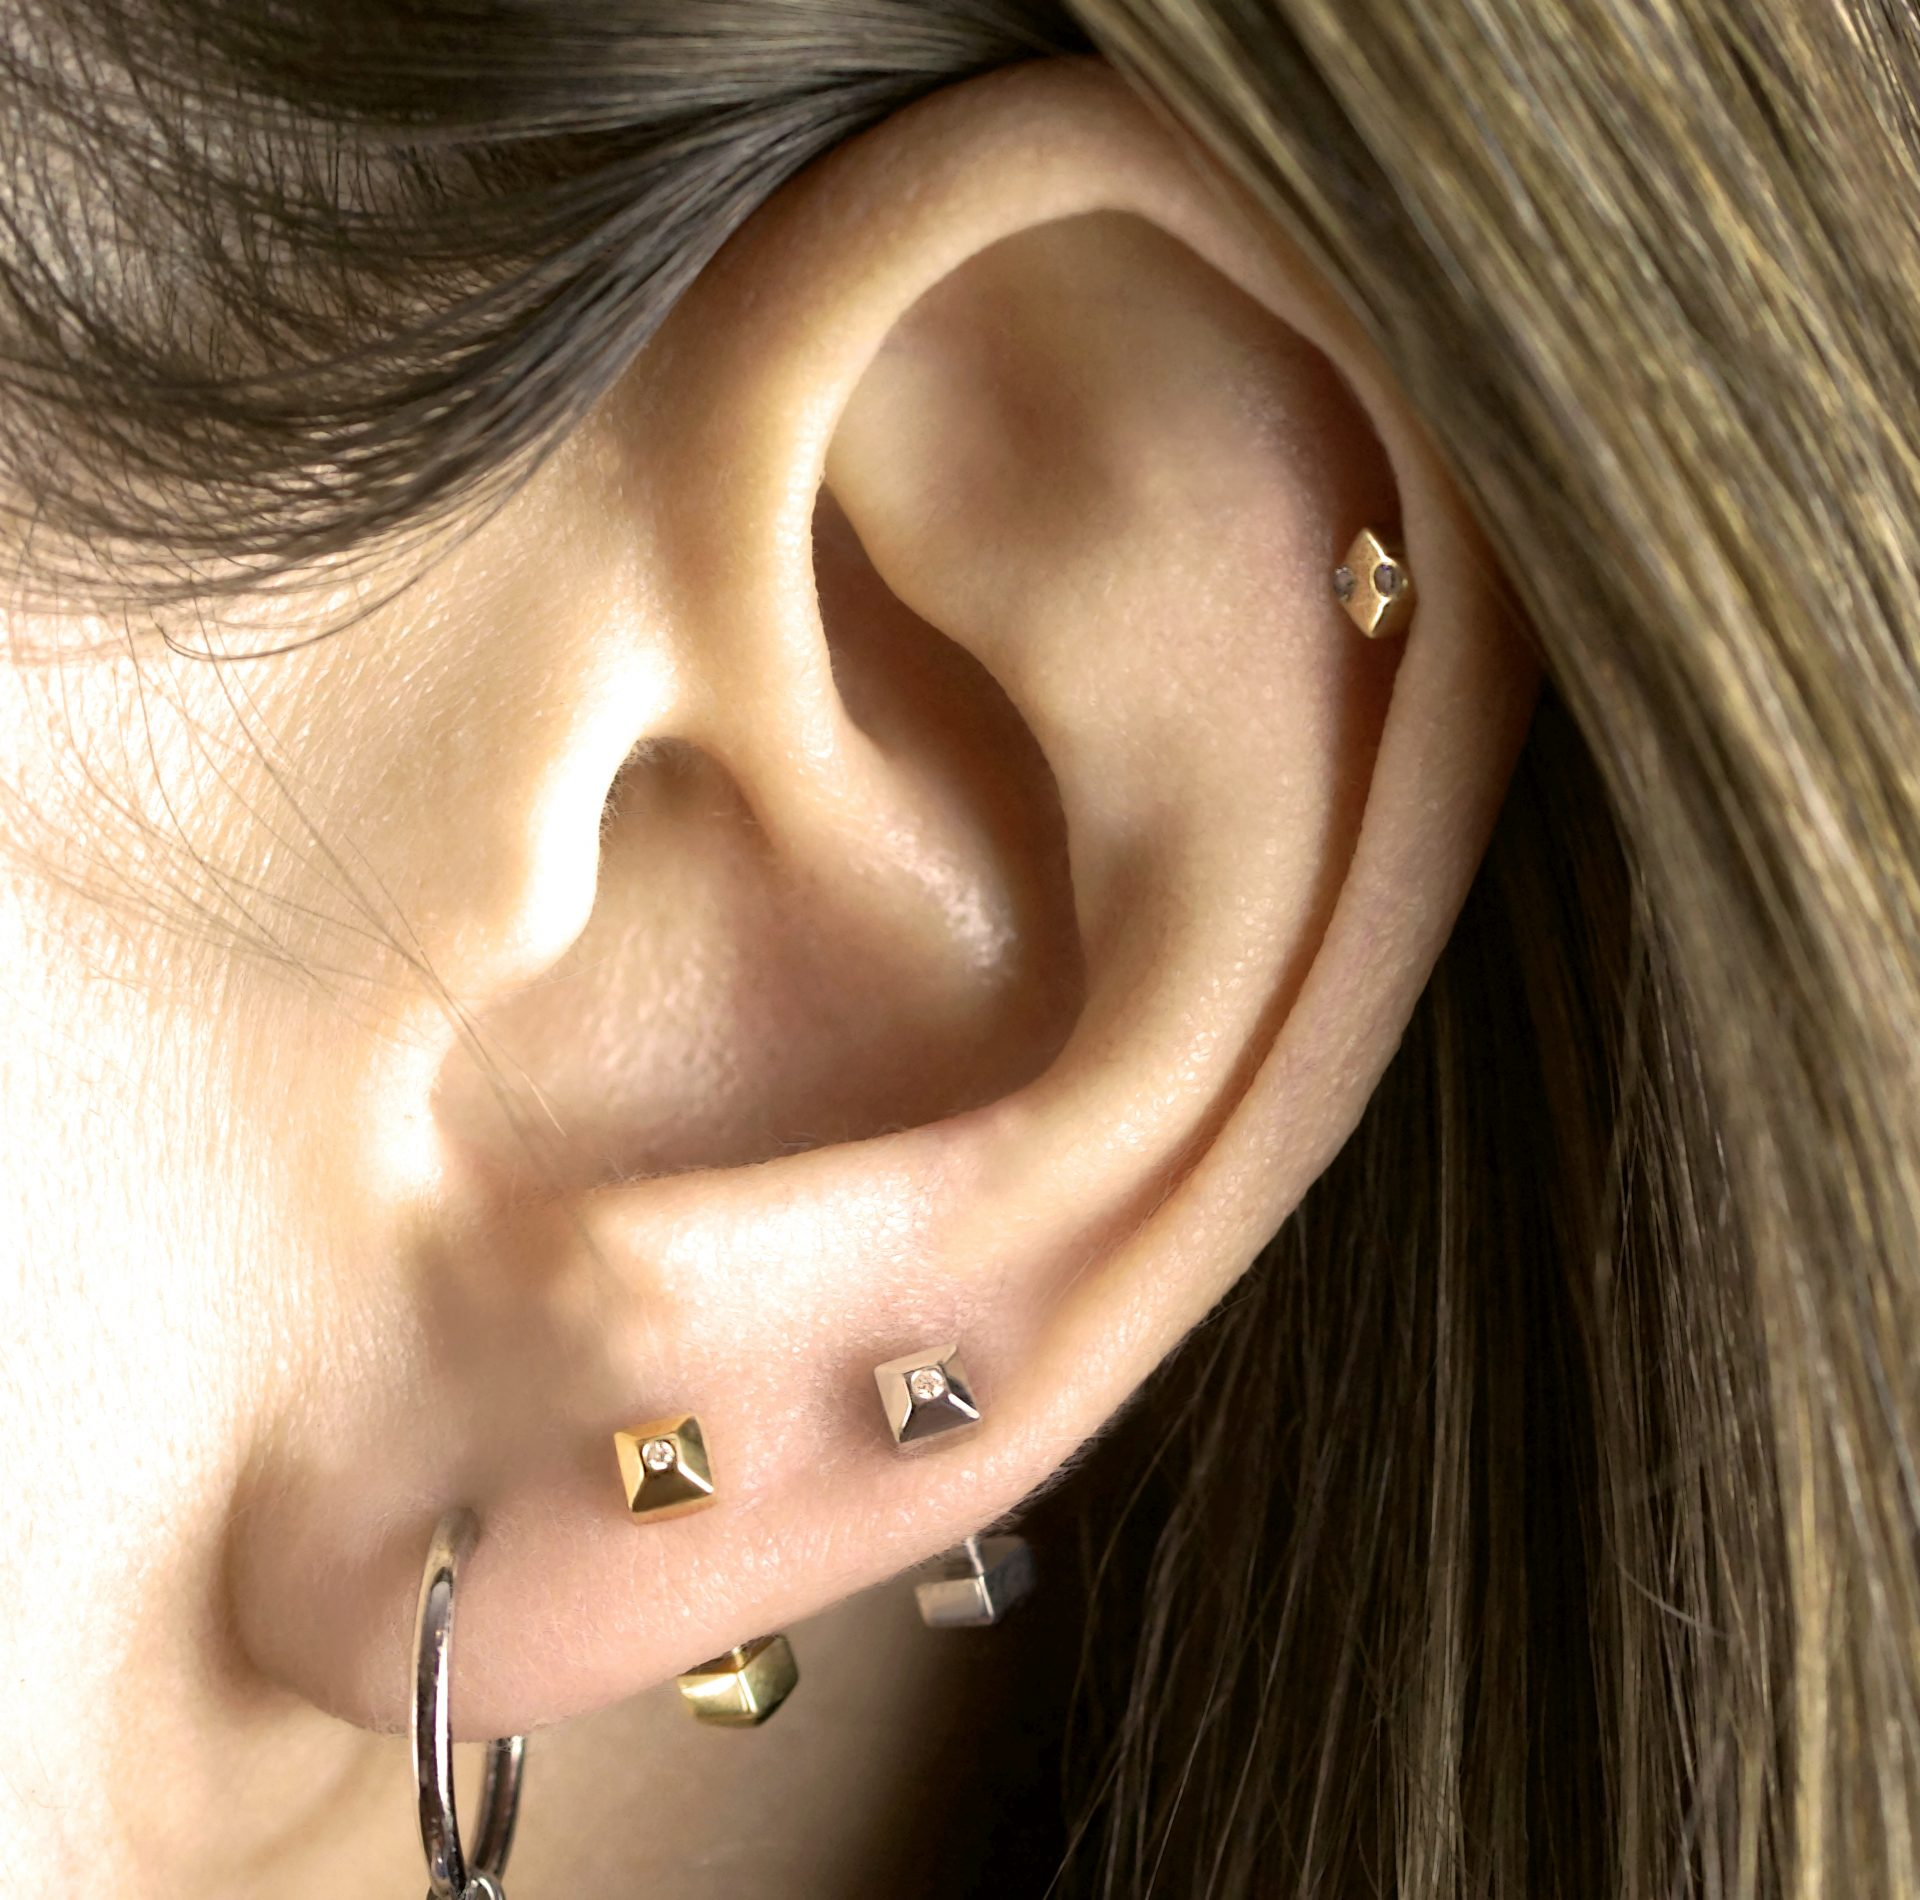 18-k-yellow-gold-daith-lobe-barbell-unisex-luxury-piercing-earring-lena-cohen